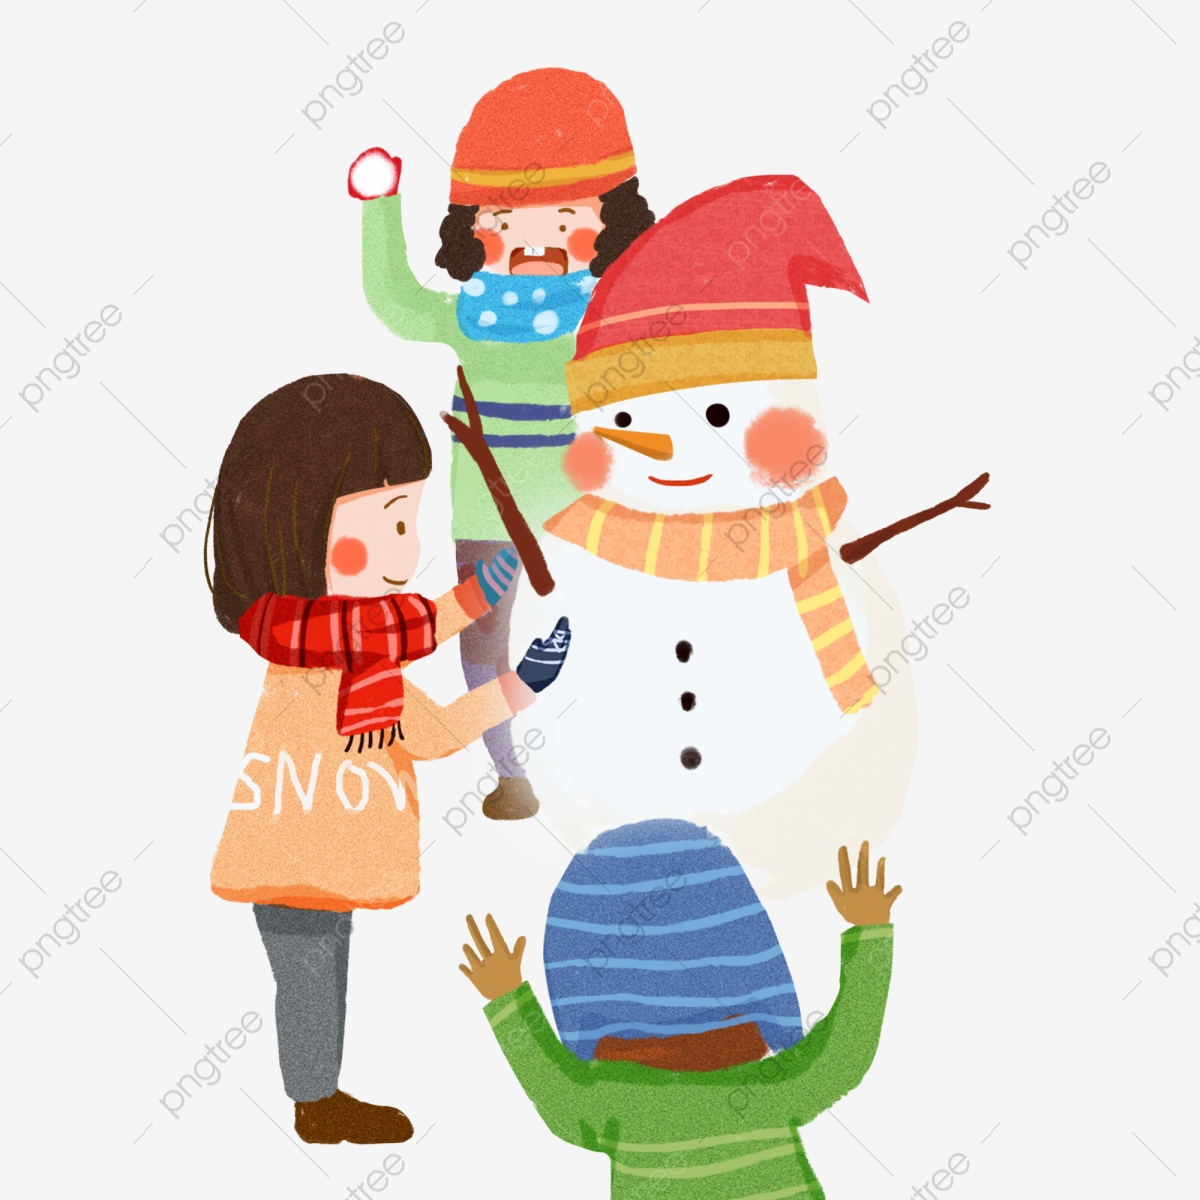 Image result for free clipart snowman   Snowman clipart, Snowman, Clip art